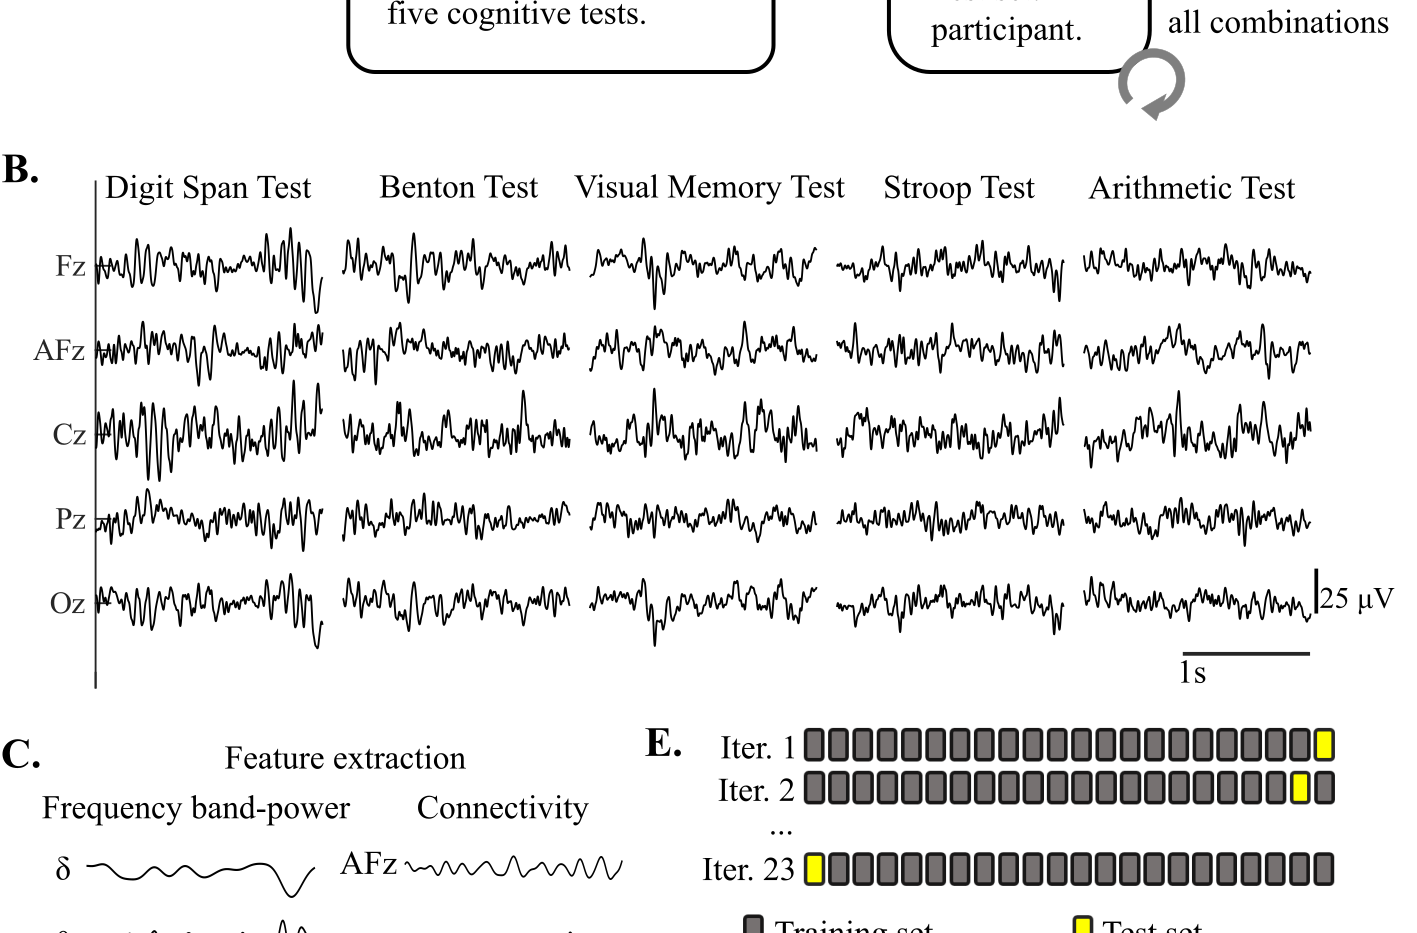 EEG data analysis and machine learning classification implementation, with sample data from one participant as it goes through the classification pipeline. A. EEG feature classification flowchart. The black marks on the top right corner indicate that a visual example of the process is shown in sections B-G. B. EEG data from one participant, in the Wide classroom design condition, for 2 s in all cognitive tests. C. Feature extraction: frequency band-power for each channel; and connectivity using PDC. C. The 14 most discriminant features to classify between the Neutral vs Wide design conditions. The classifier model shown corresponds to the VMT. D. Machine learning data distribution in the Training and Testing sets for 23 iterations. In each iteration, the data from an unseen participant was used for the Testing set. E. Machine learning example for one iteration. A classification model (k-SVM polynomial degree 2) was built from the Training set, and evaluated in the Testing set. G. The receiver operating characteristic curve (ROC), classification matrix, and classification accuracy are used to evaluate the classification performance.